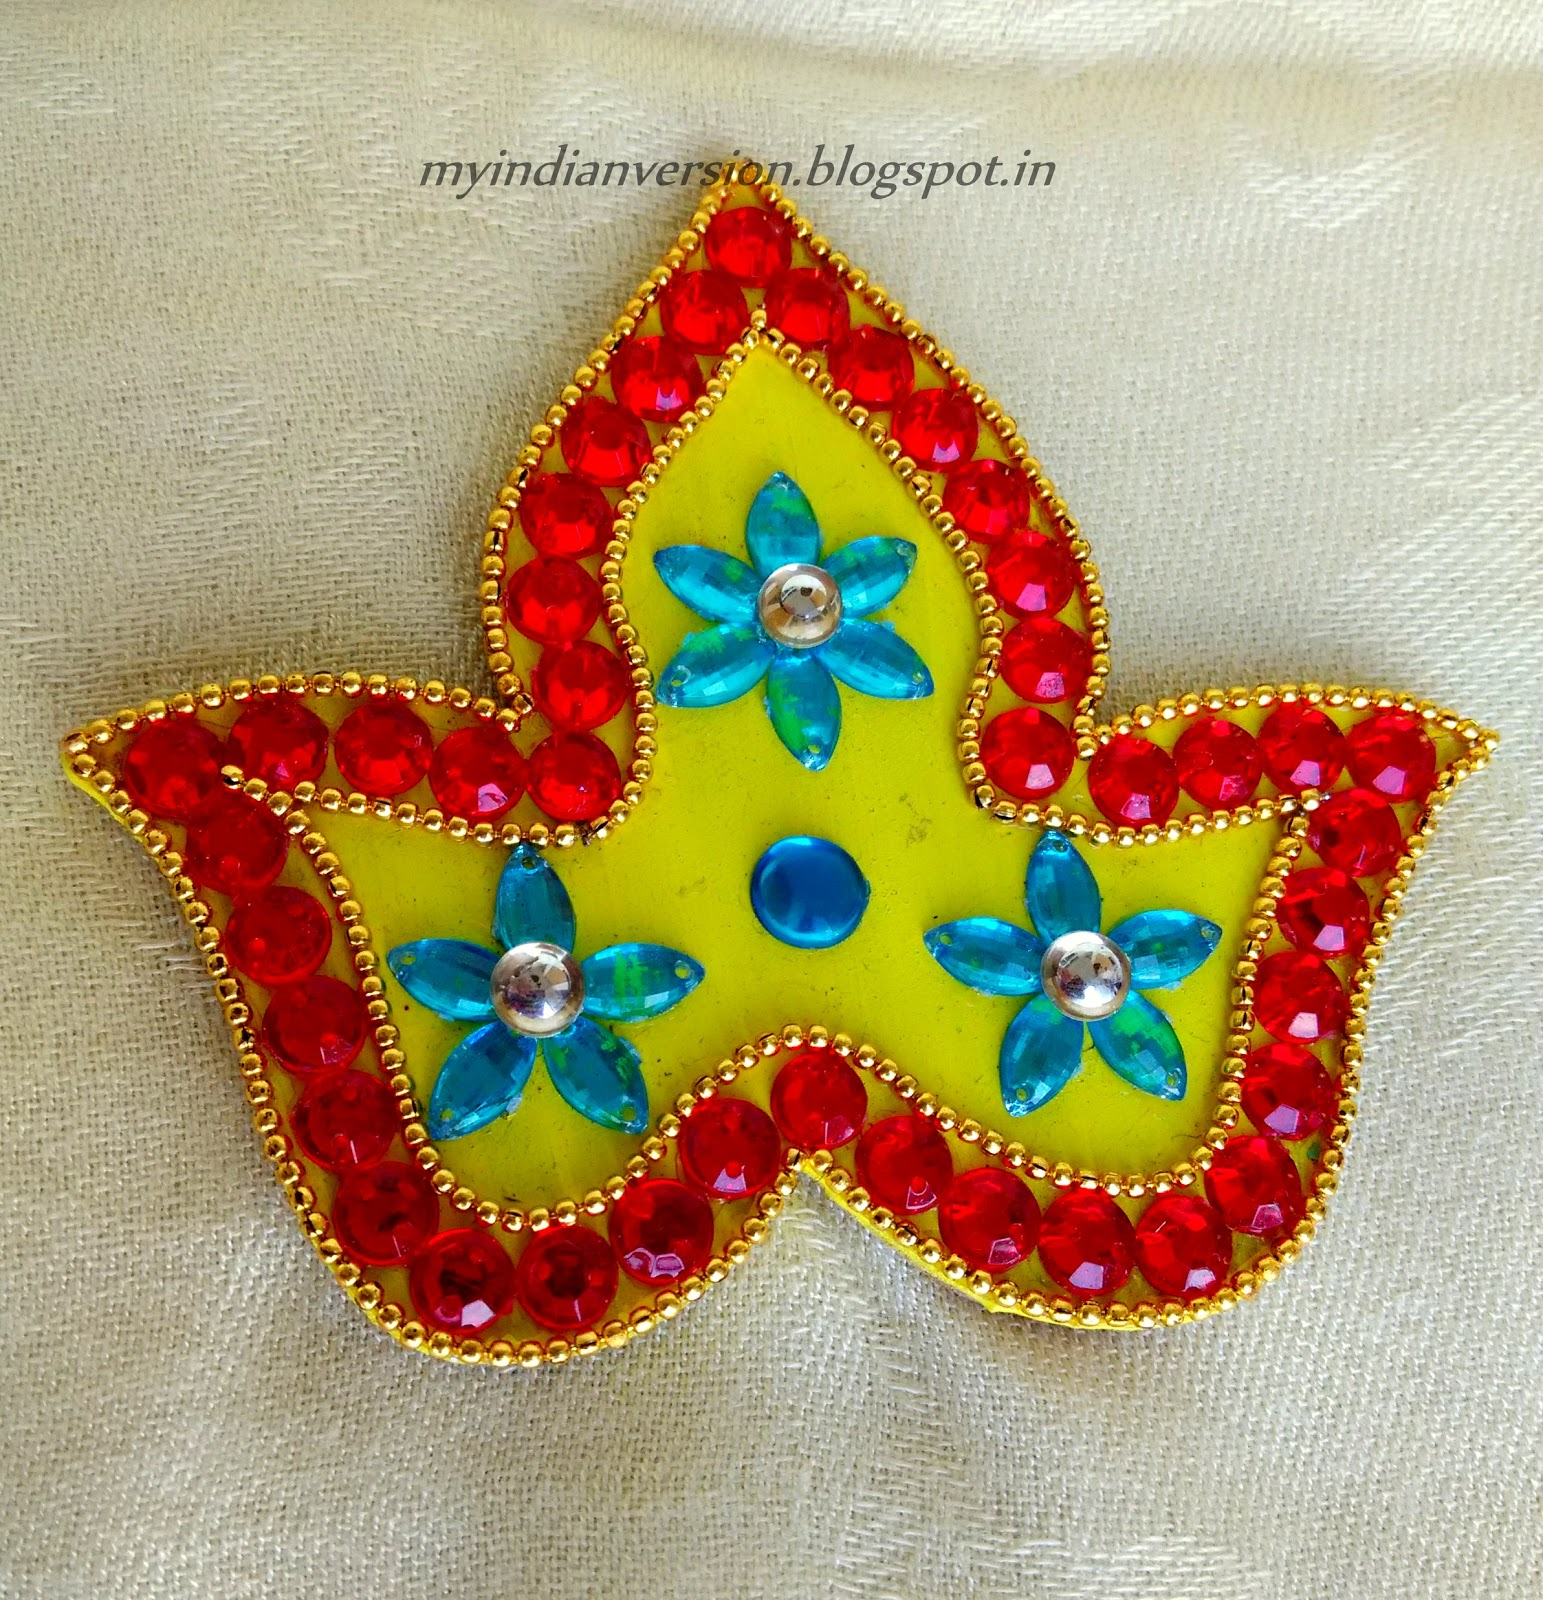 My indian version diwali series part 3 kundan rangoli for Home made rangoli designs